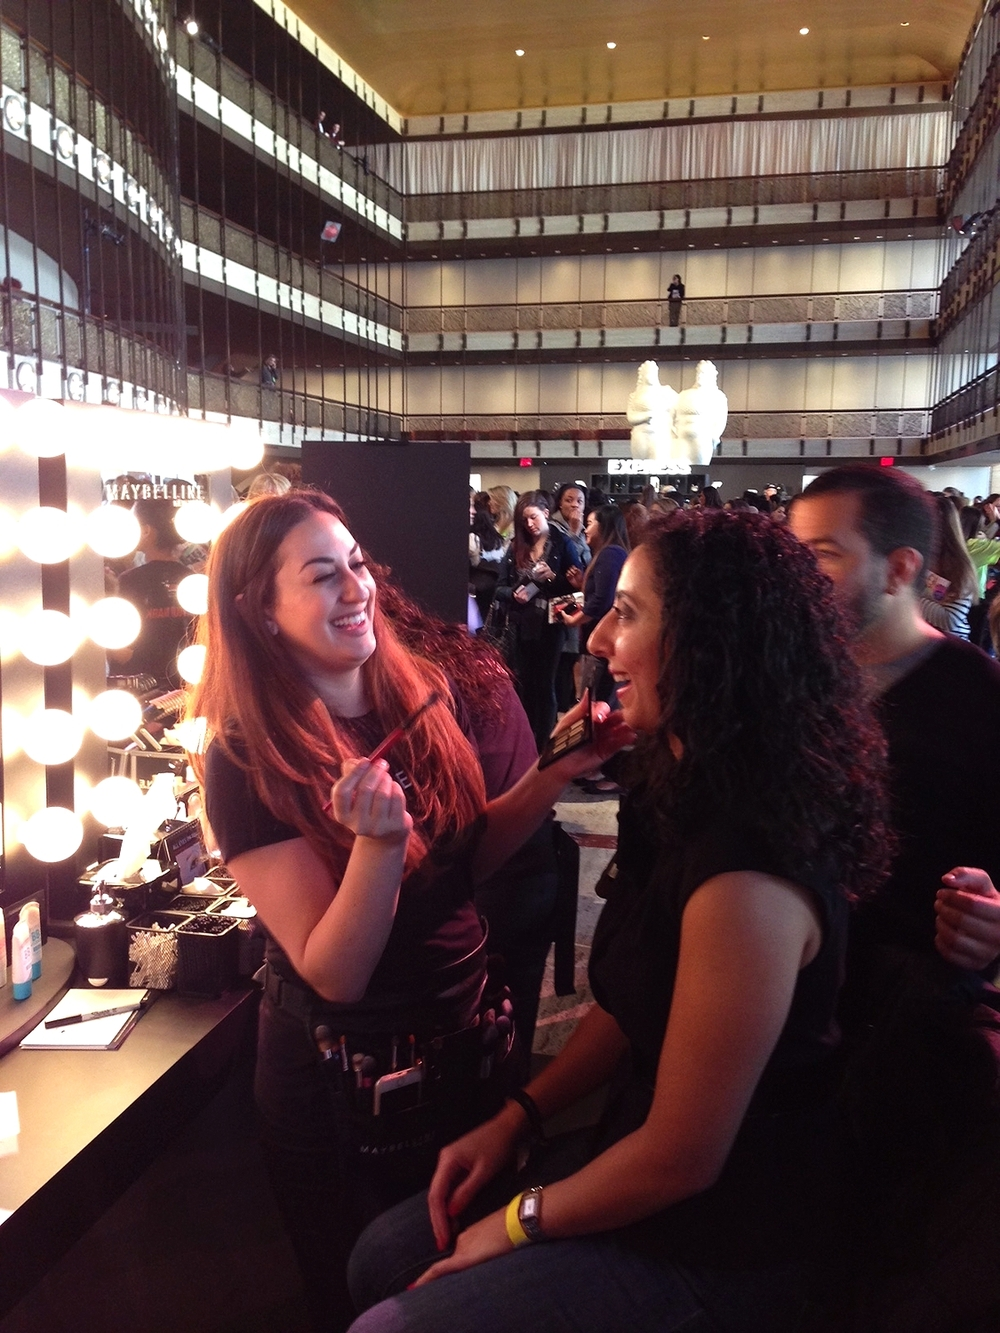 chatting it up with celeb Maybelline makeup artist Gab Almodovar